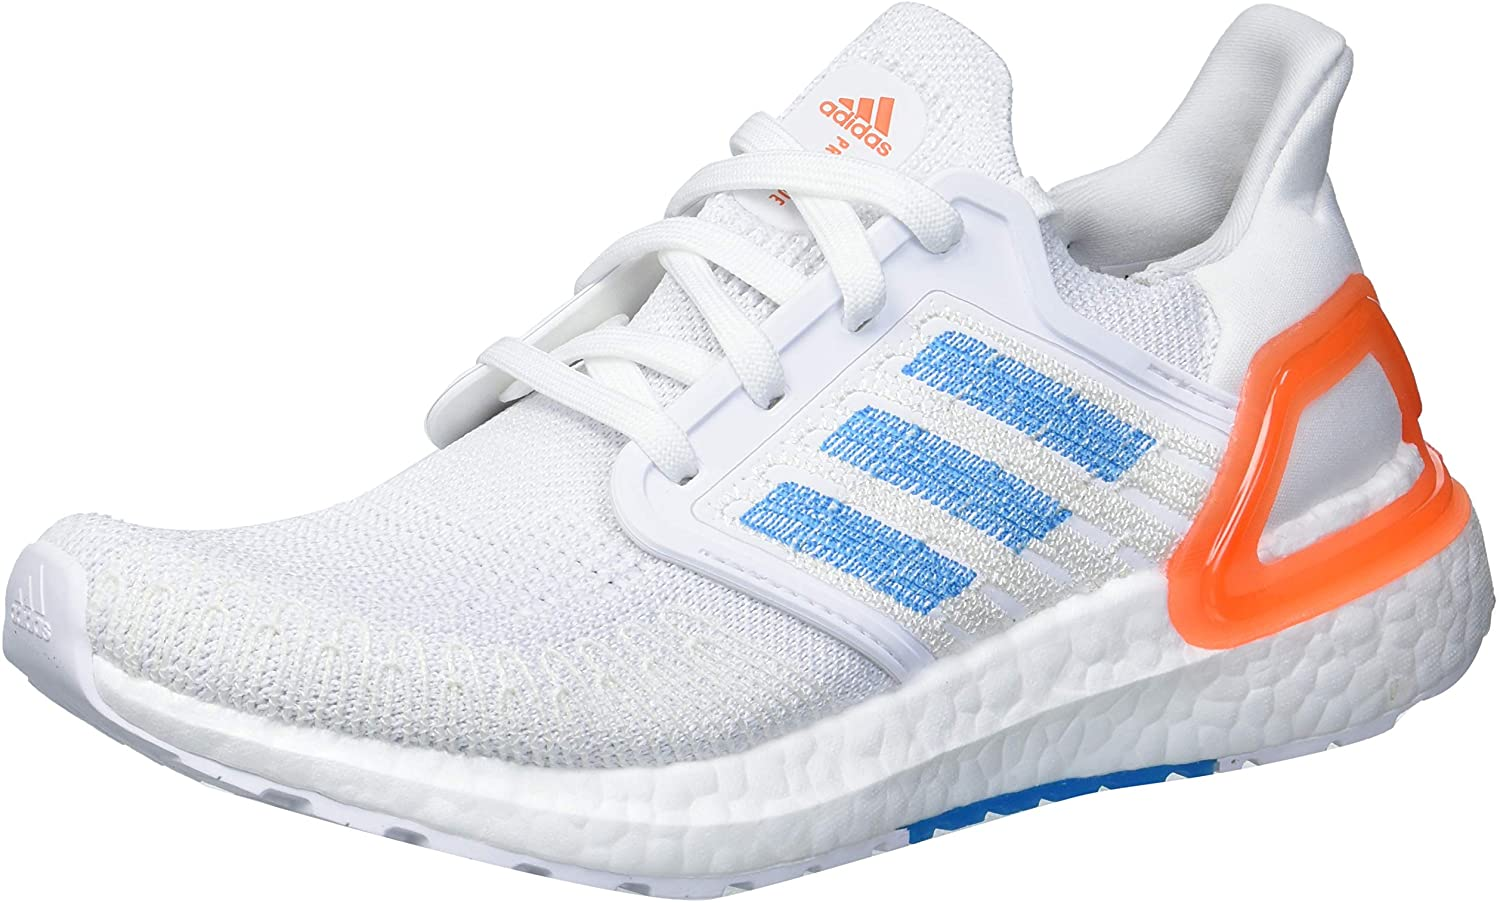 Adidas Men S Ultraboost 20 Primeblue Running Shoe White Sharp Blue True Orange Numeric 9 Point 5 Amazon Ca Shoes Handbags